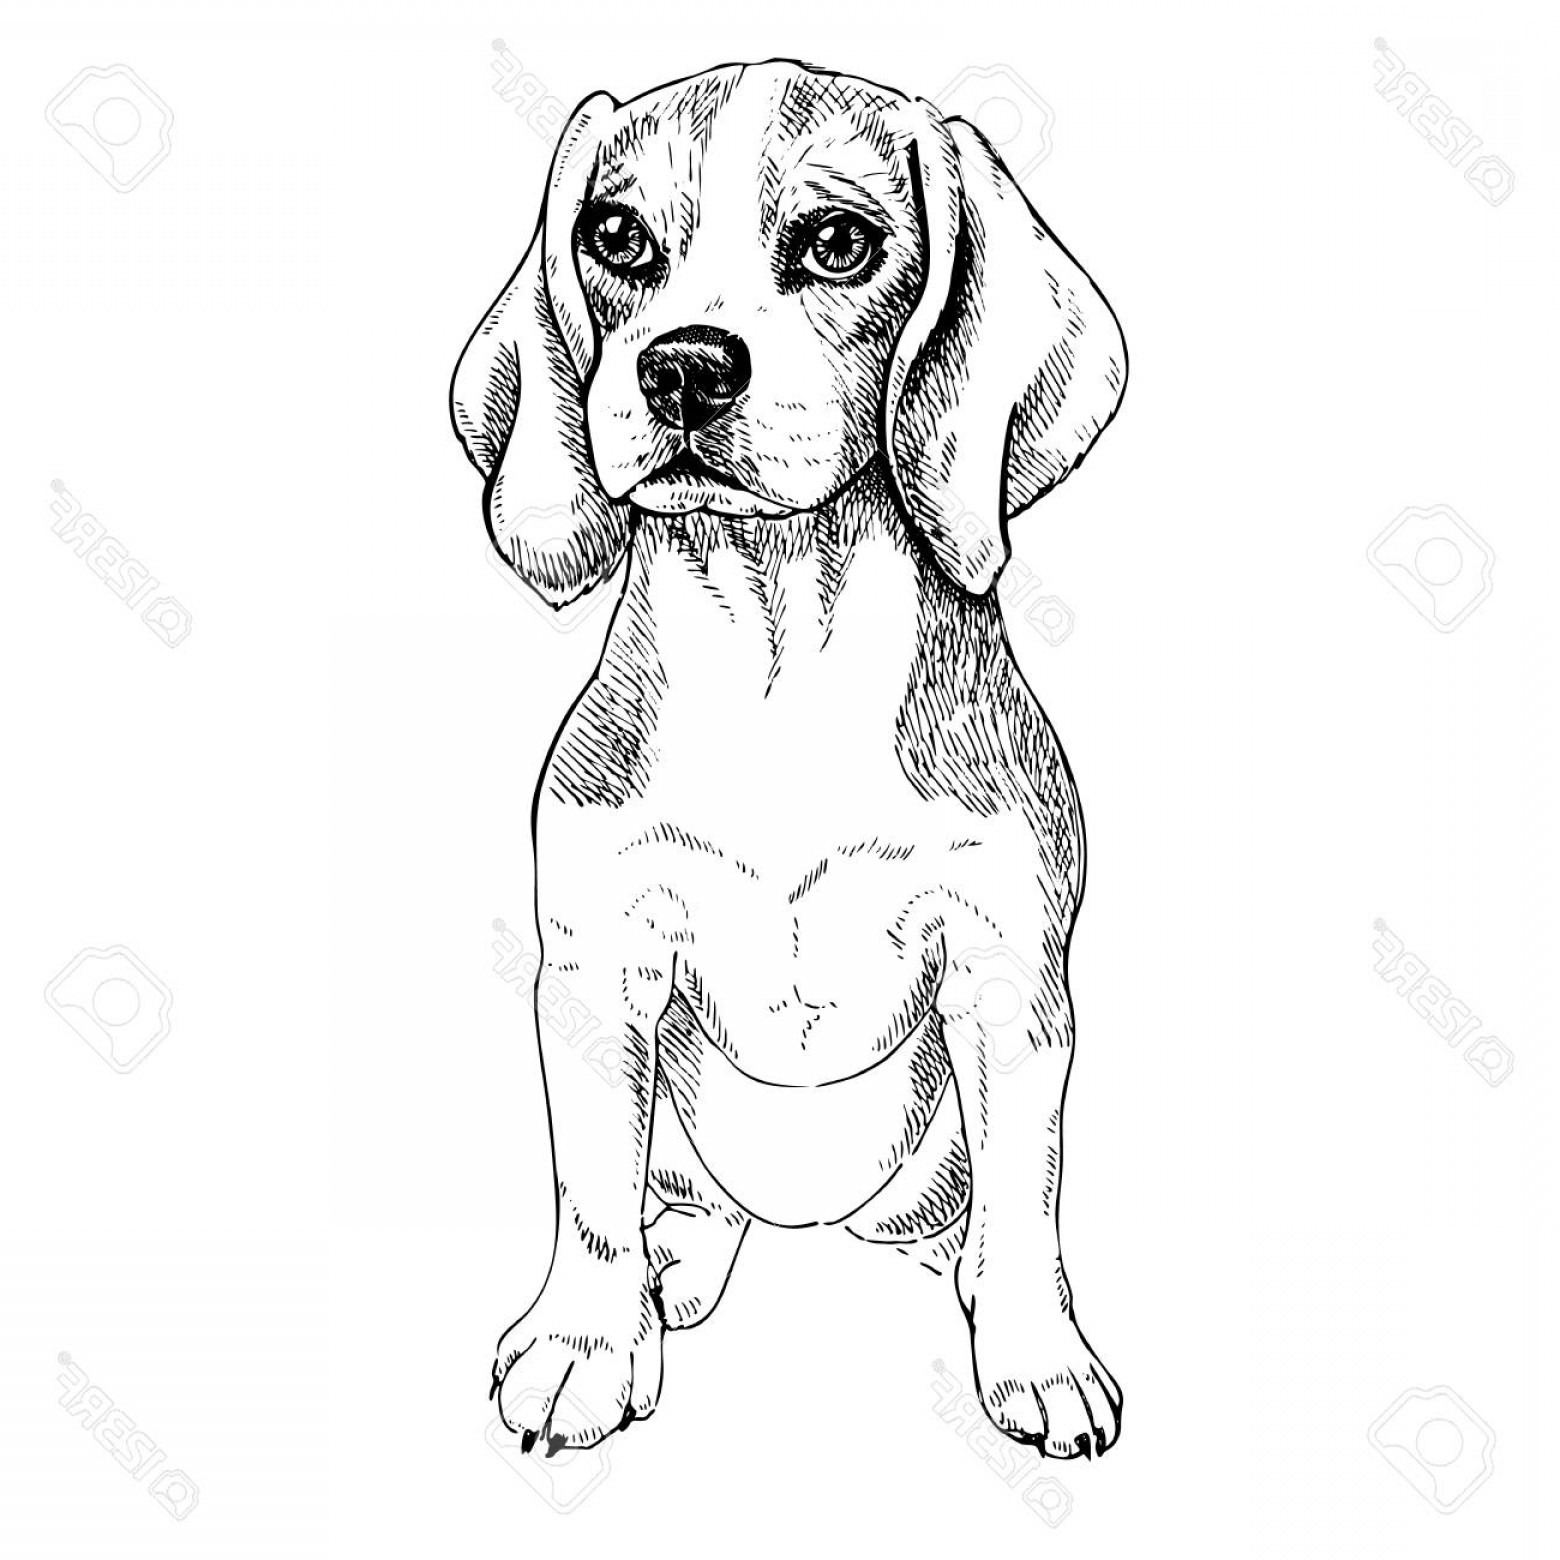 Vector Art Beagle Dog: Photostock Vector Close Up Portrait Of Sitting Beagle Dog Vector Engraved Art Friendly Smilling Puppy Isolated On Whit